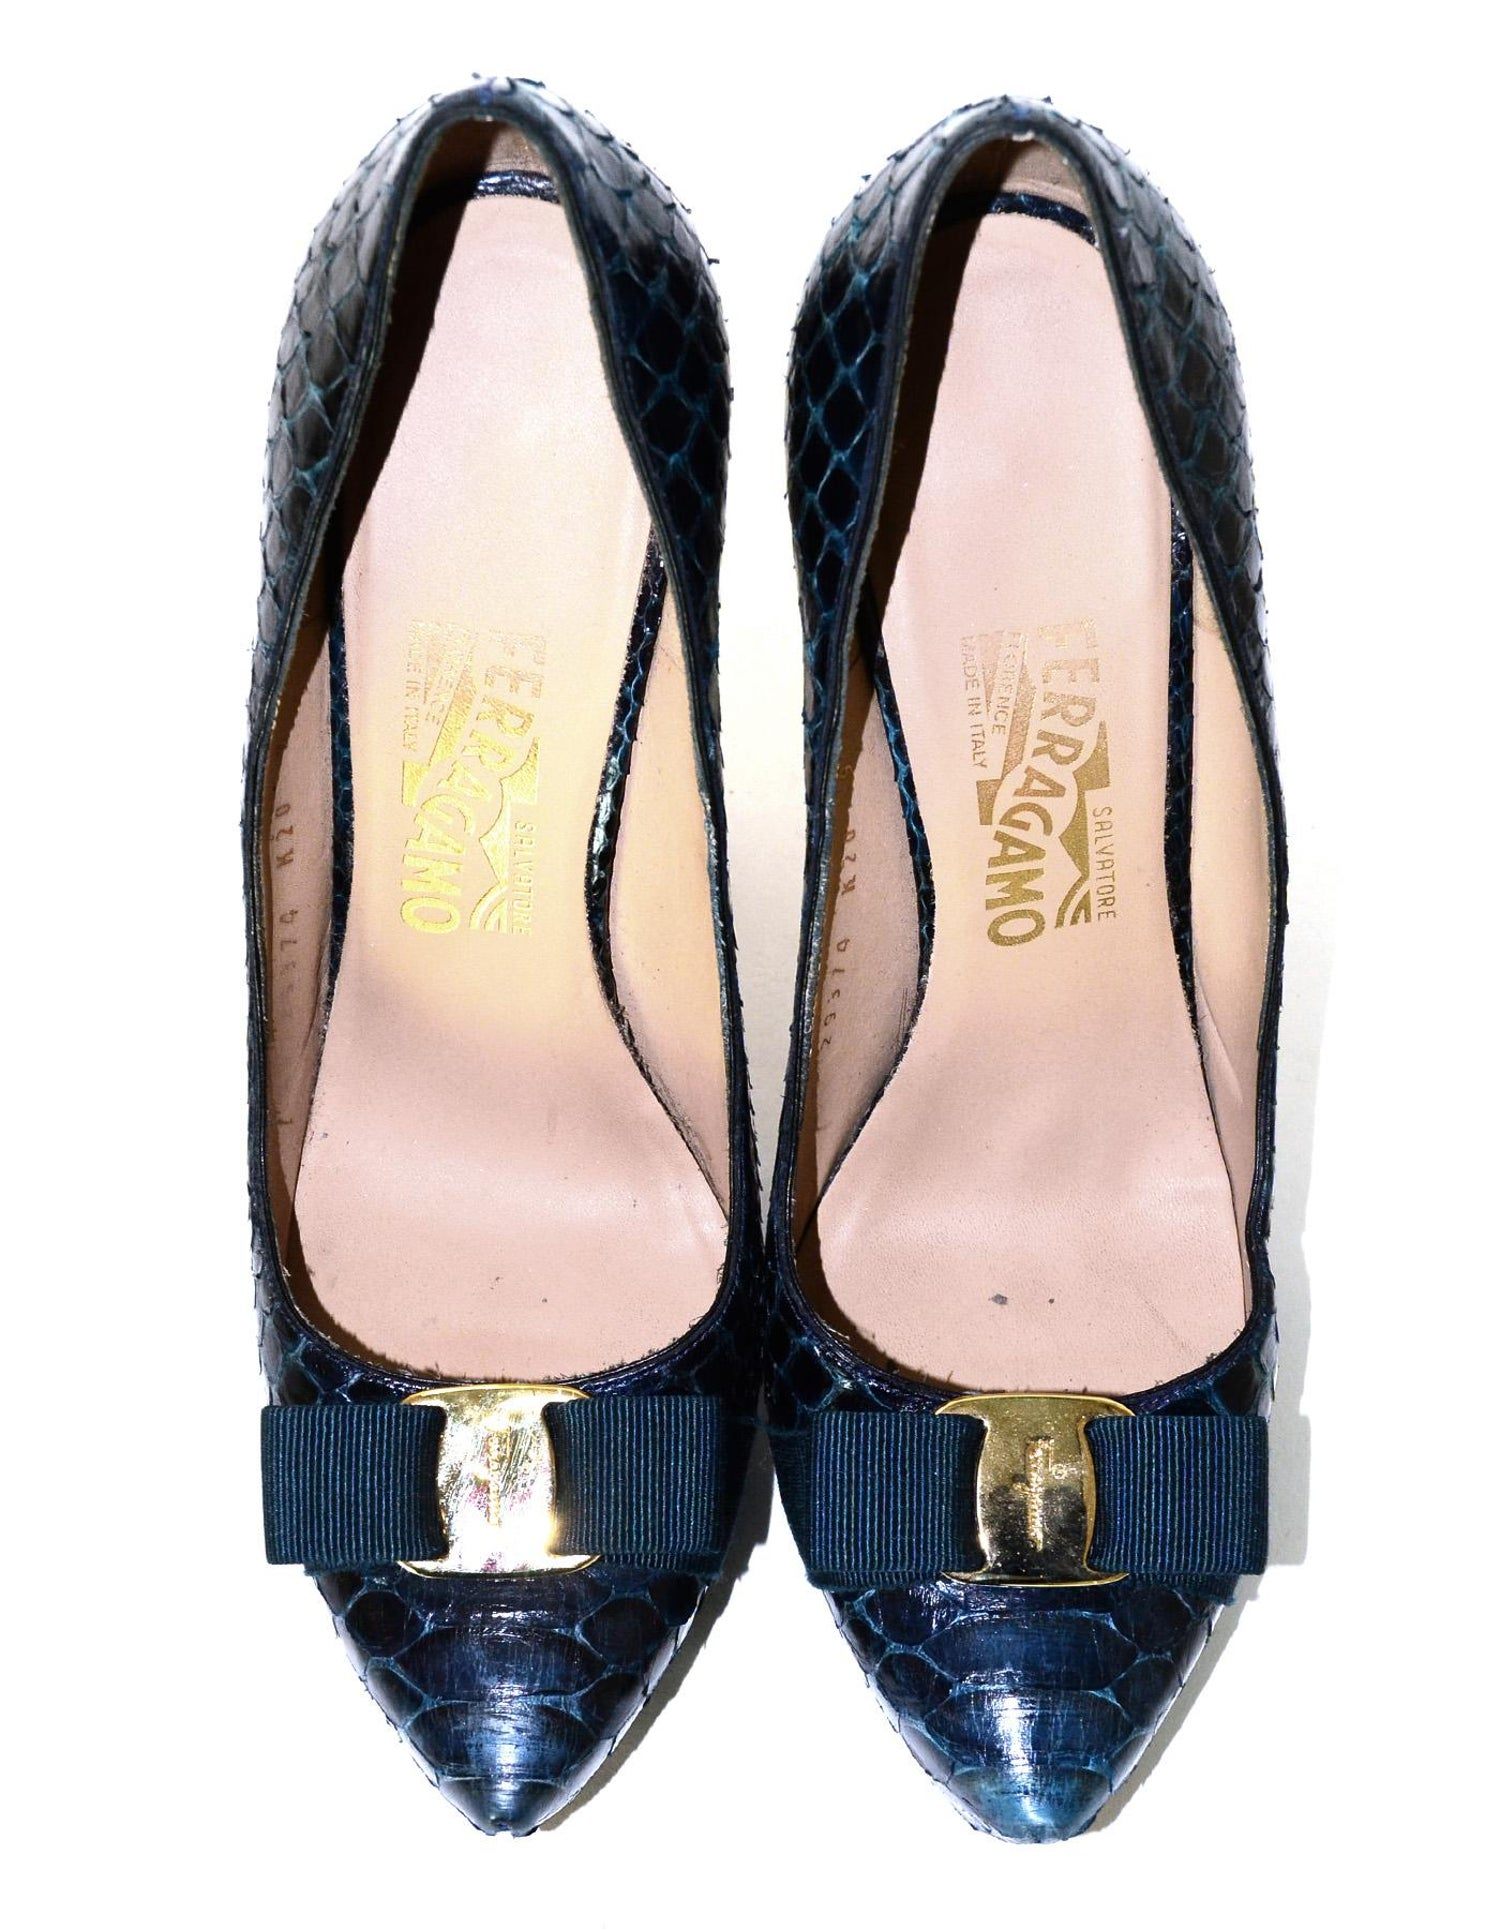 e0d8d38c5b7 Salvatore Ferragamo Blue Navy Baltic Python Trilly C Platform Pumps W  Bow  Sz 39 For Sale at 1stdibs